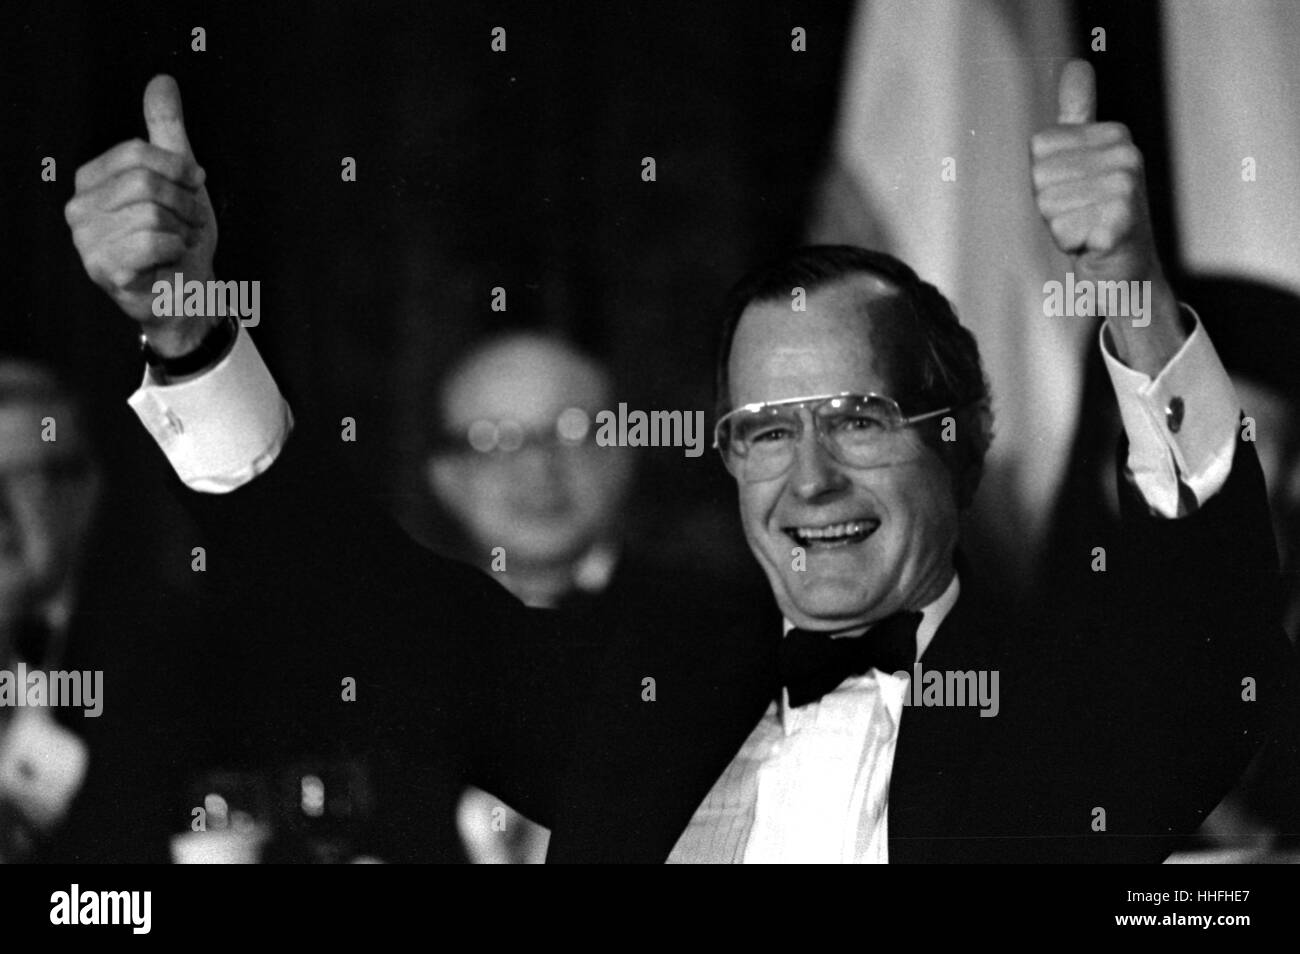 Pres George H. Bush All thumbs up as he is received at a dinner reception in Boson Ma 1992 - Stock Image